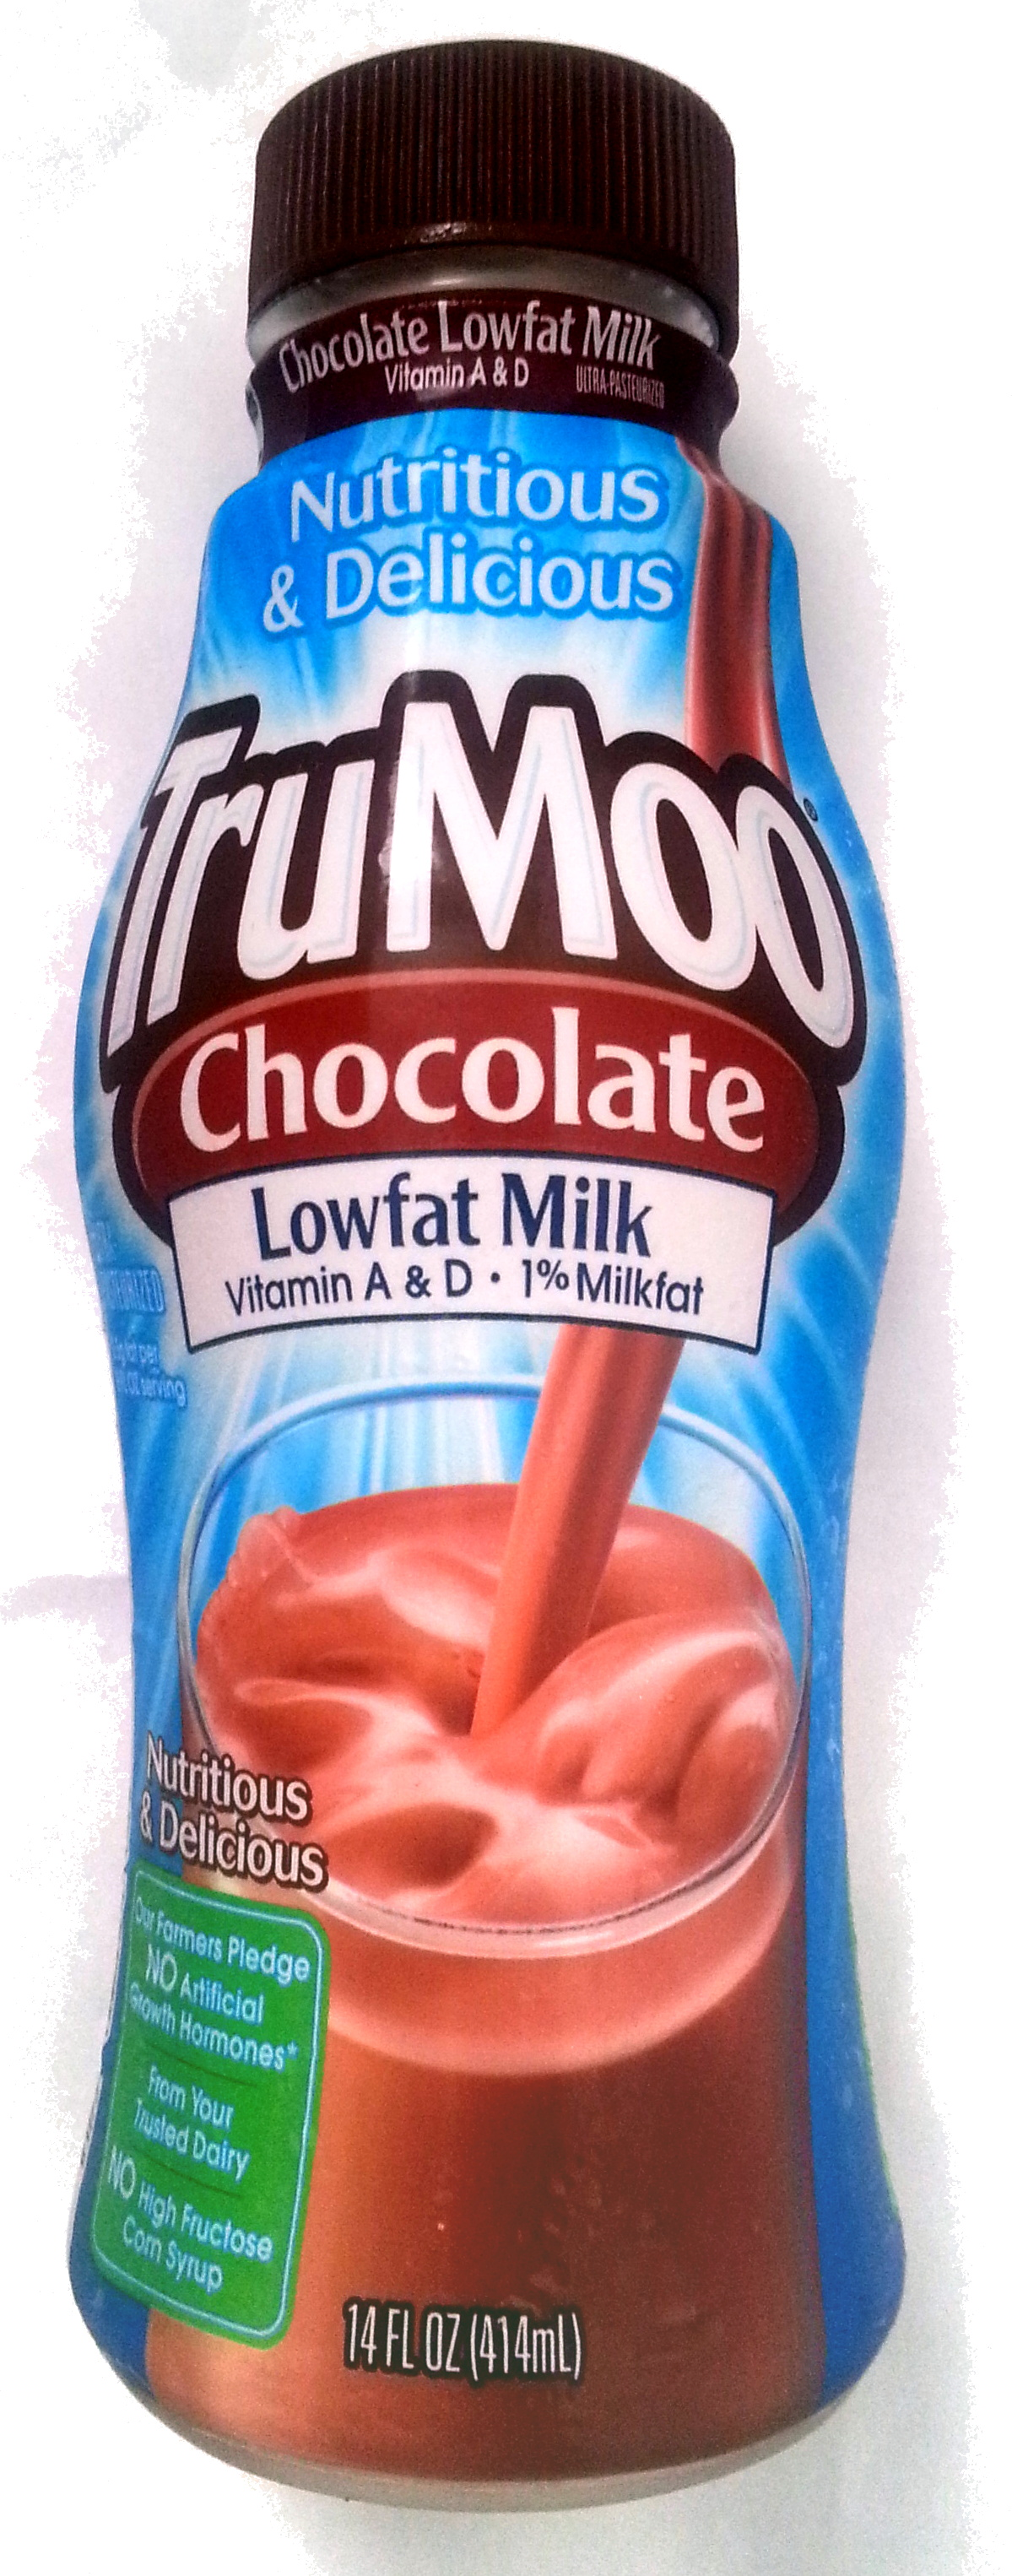 Chocolate Milk - TruMoo - 14 FL OZ (414 mL)